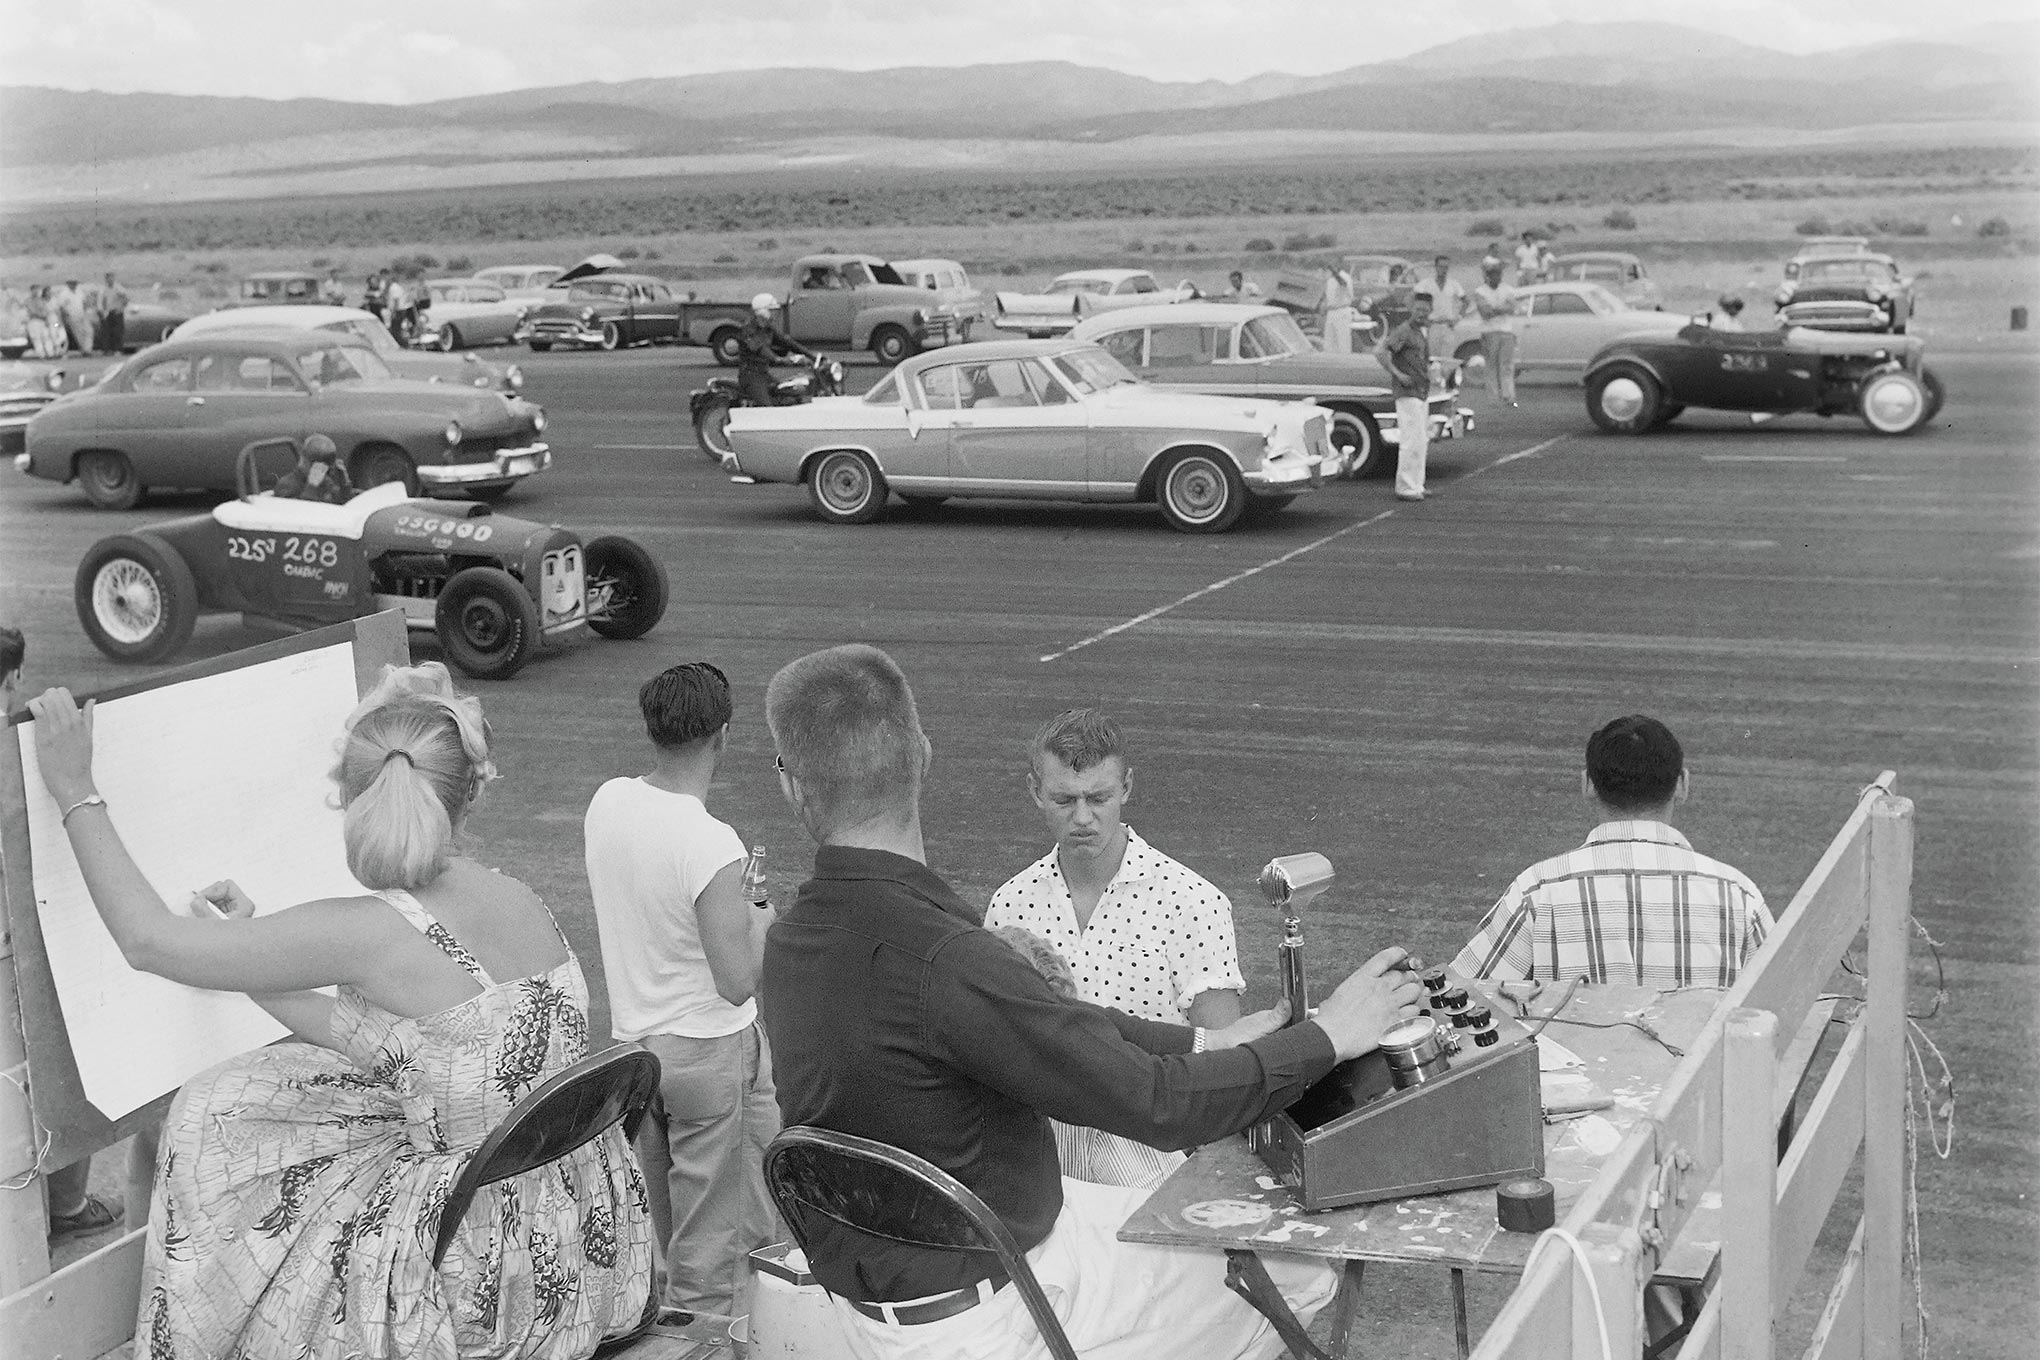 Two published frames from the same angle and roll of Eric Rickman film afford better views of announcer-timer Bob Fabel and scorer-trophy queen Sylvia Fore (Dec. '57 HRM; Nov. '11 HRD), but this outtake has the best background. Half-mile, four-car drags were easily accommodated by the 8,000-foot-long Douglas-Tahoe Airport runway in Minden, Nevada. Racers loved the extra quarter-mile to build respectable speed at 4,700 feet above sea level.